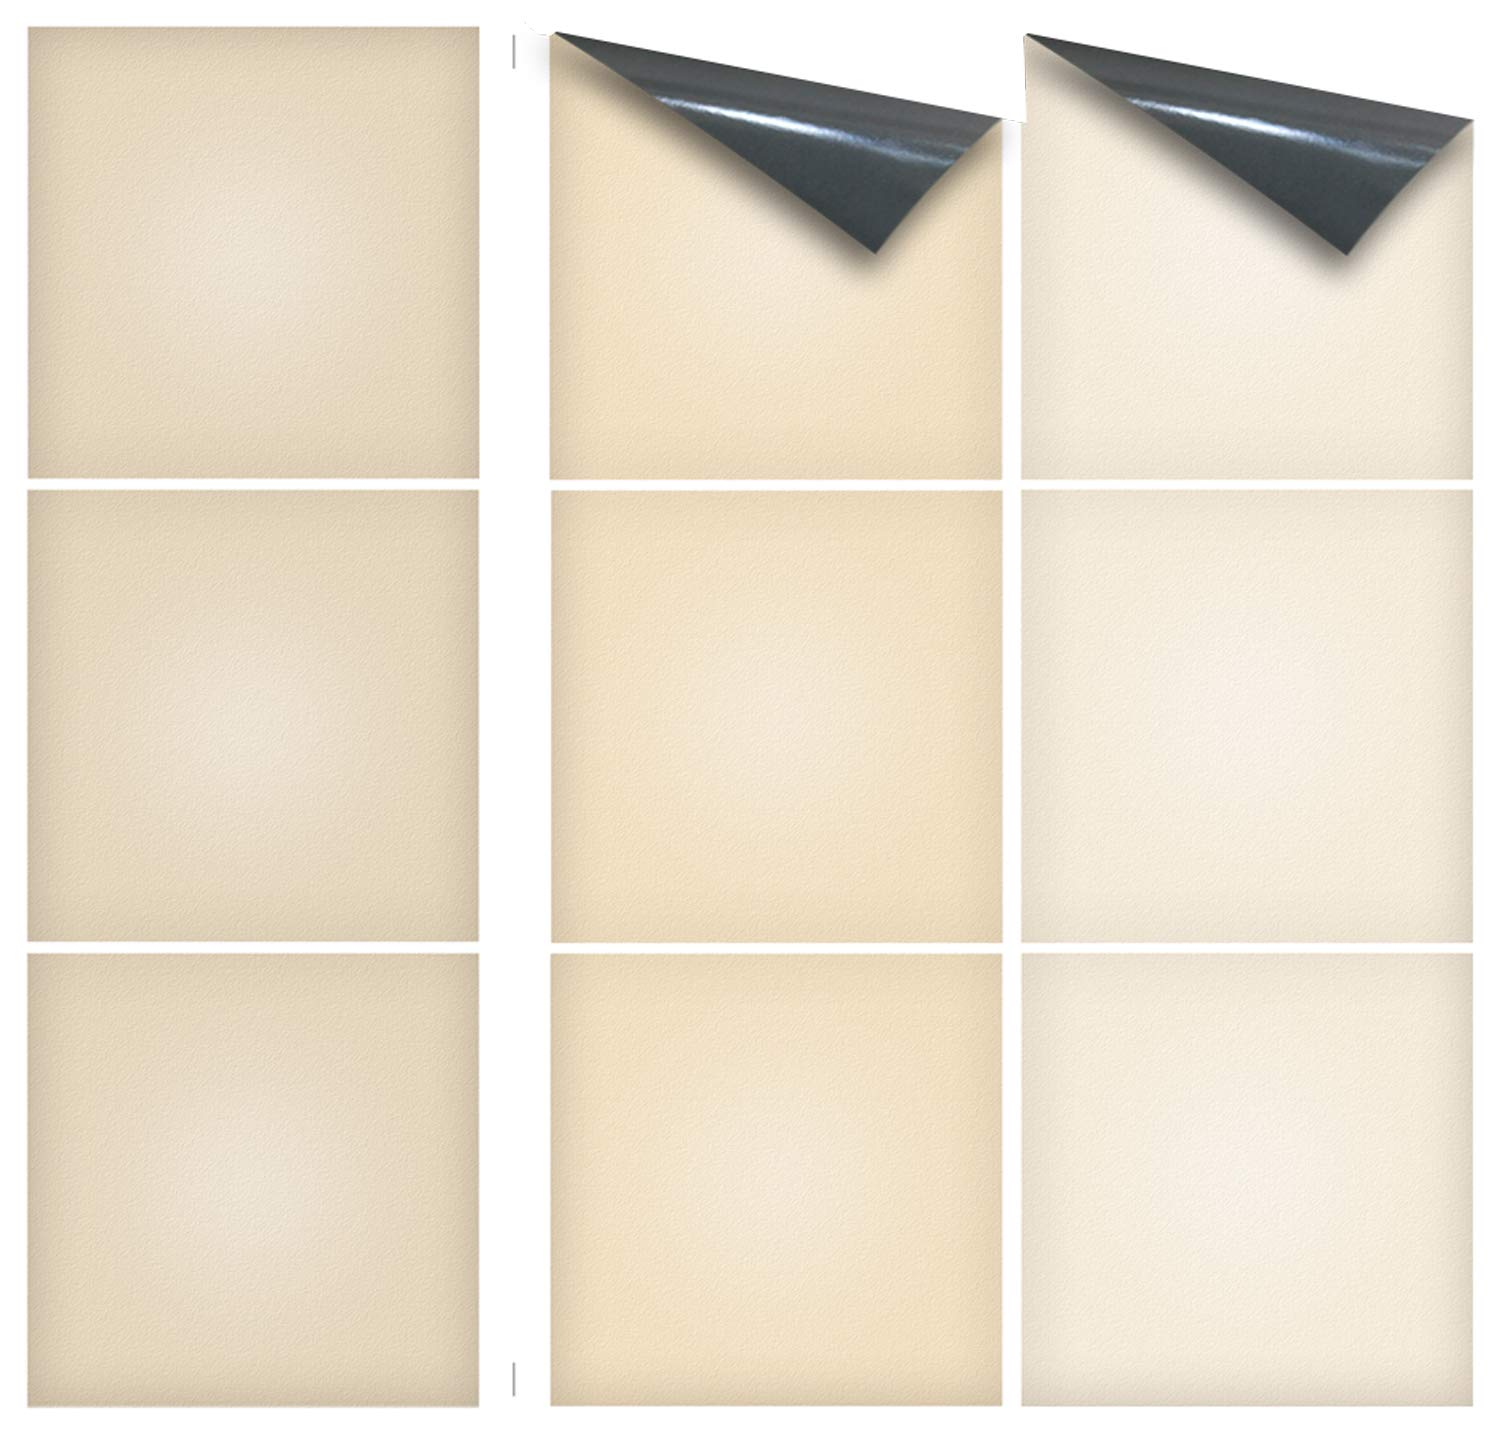 """10cm x 10cm 35 NEW STYLES avai non see through material DESERT STONE sheet of 9 Transfer Tile Stickers for 4/"""" x 4/"""" tiles 3M Self Adhesive sheet of nine tile sticker transfers for Kitchens /& Bathrooms Fully wipeable steam and heat resistant"""